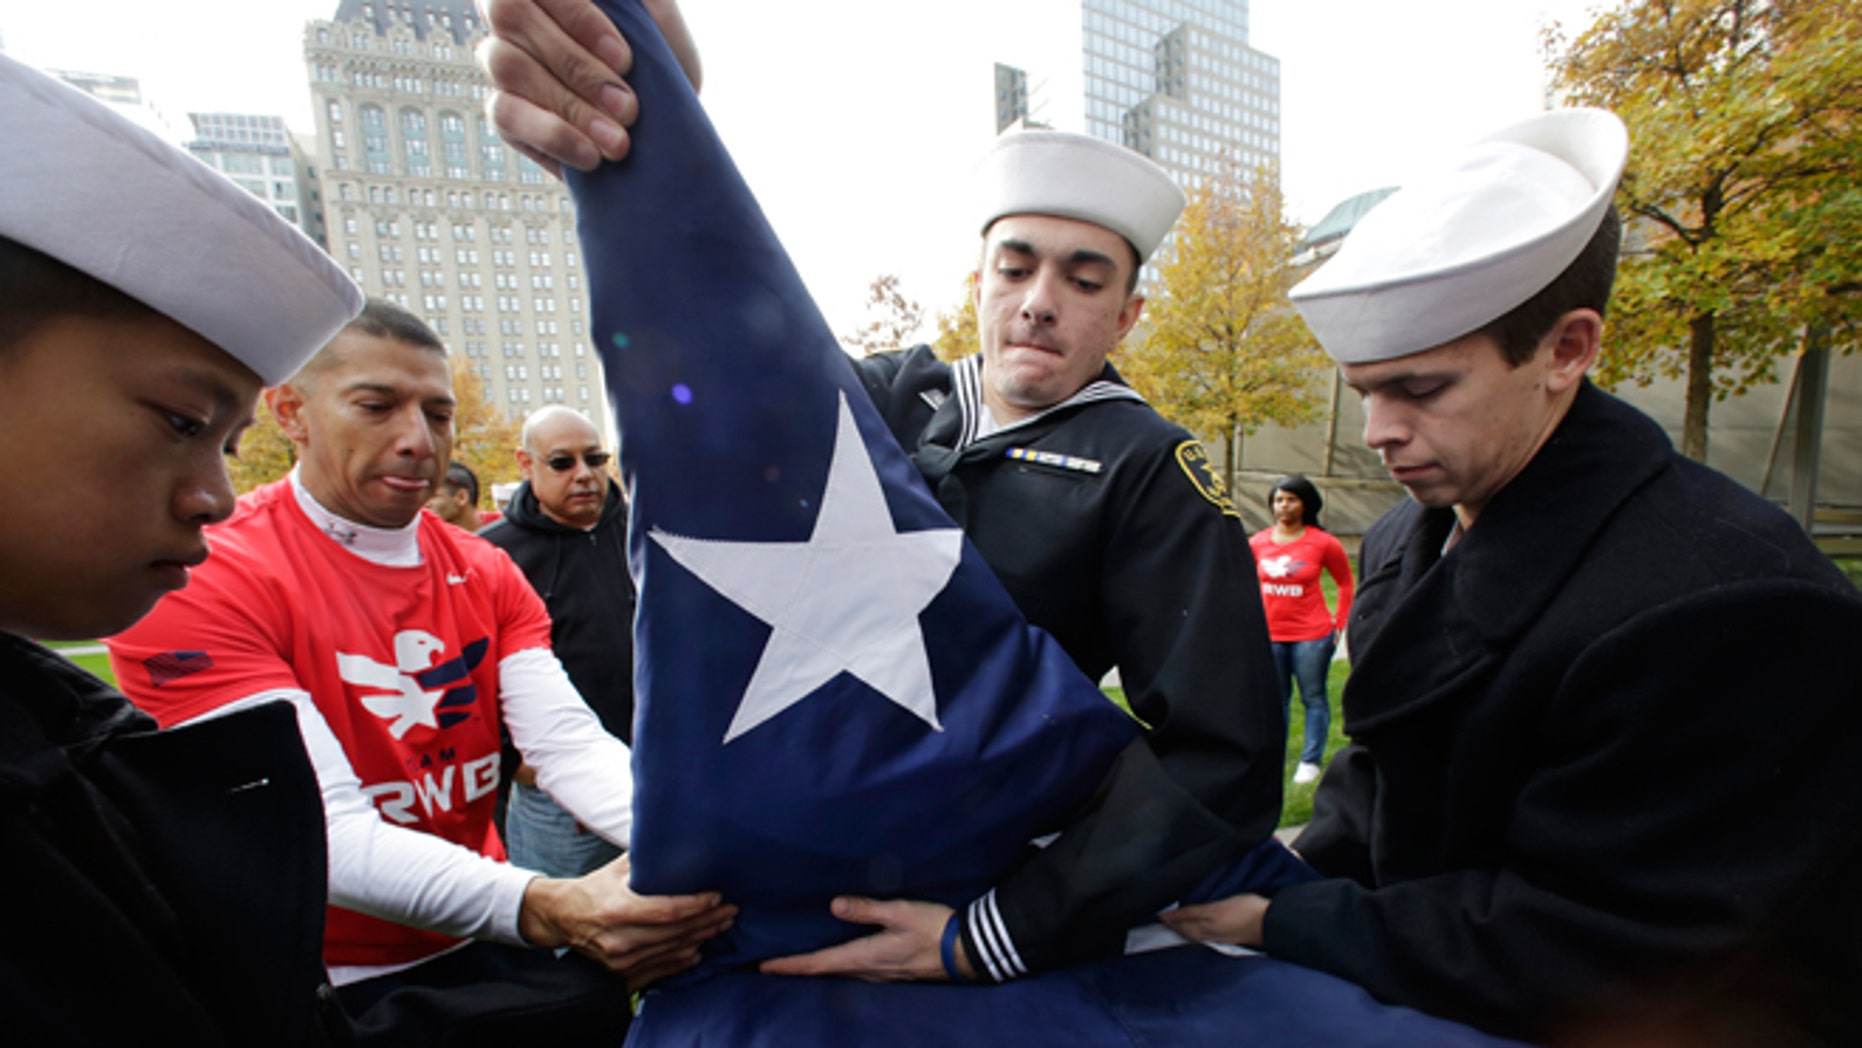 Nov. 9, 2014: Sea Cadets Daniel Cheng, left, Thomas Kessler, center, and Jack Toll help veterans advocacy group Team Red White and Blue furl a large American flag at the National September 11 Memorial in New York. The cadets are members of the John T. Dempster, Jr. Division in Trenton, N.J.